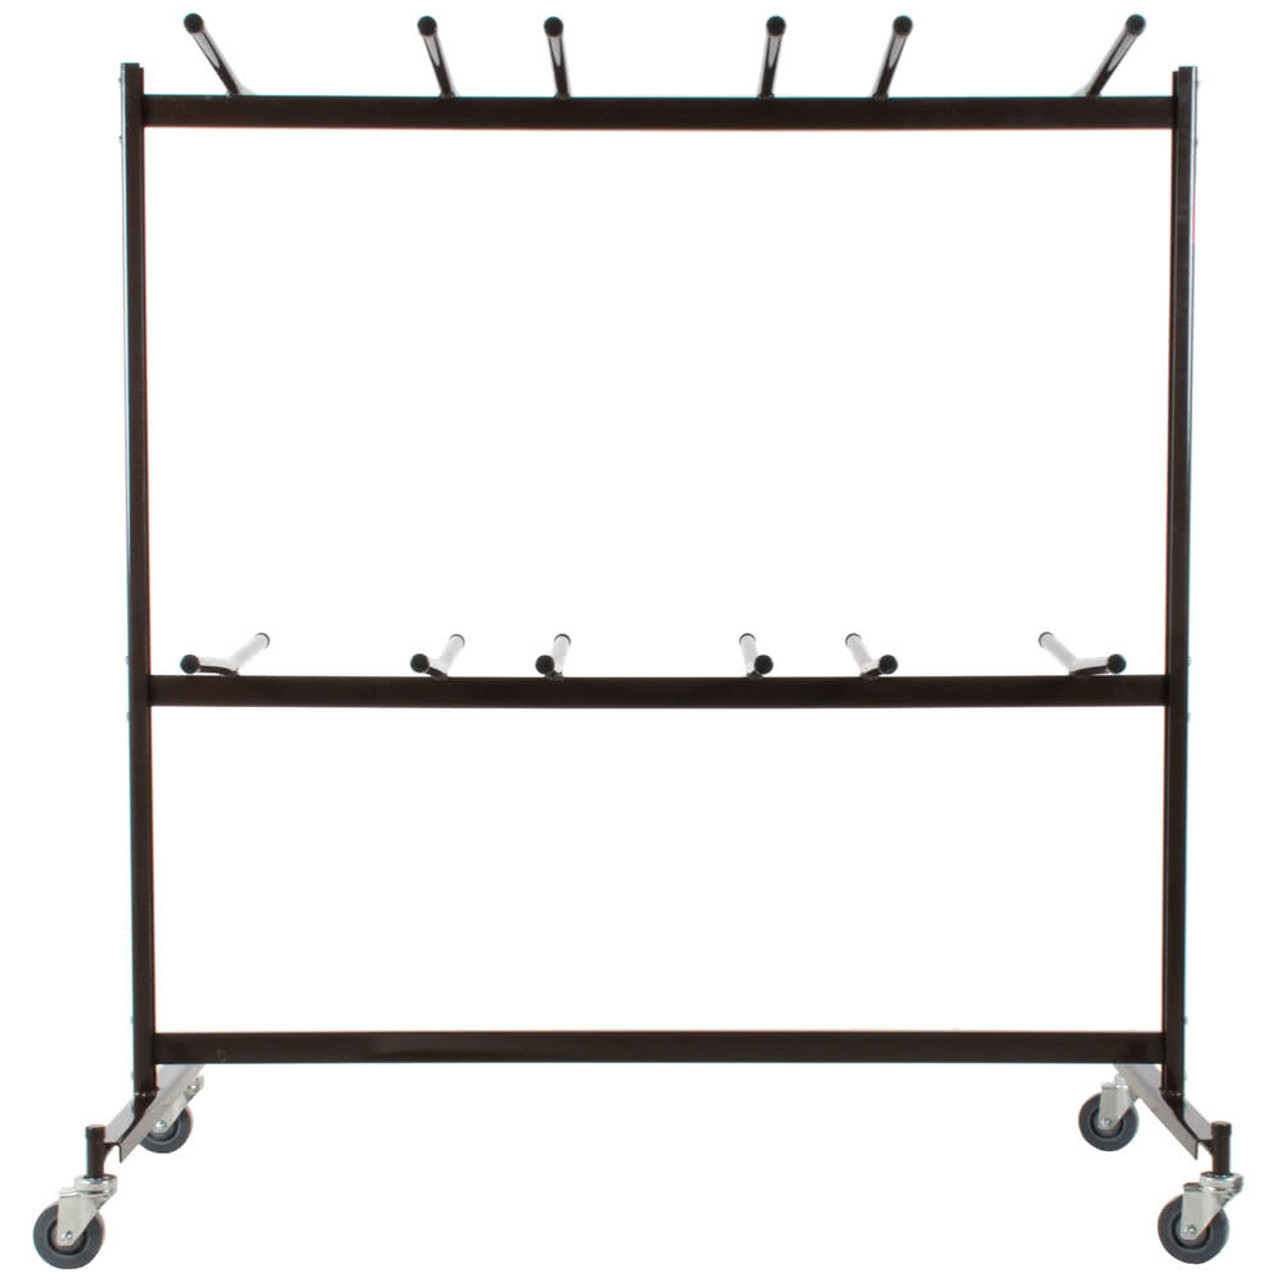 84 capacity hanging folding chair storage cart by national public seating - National Public Seating